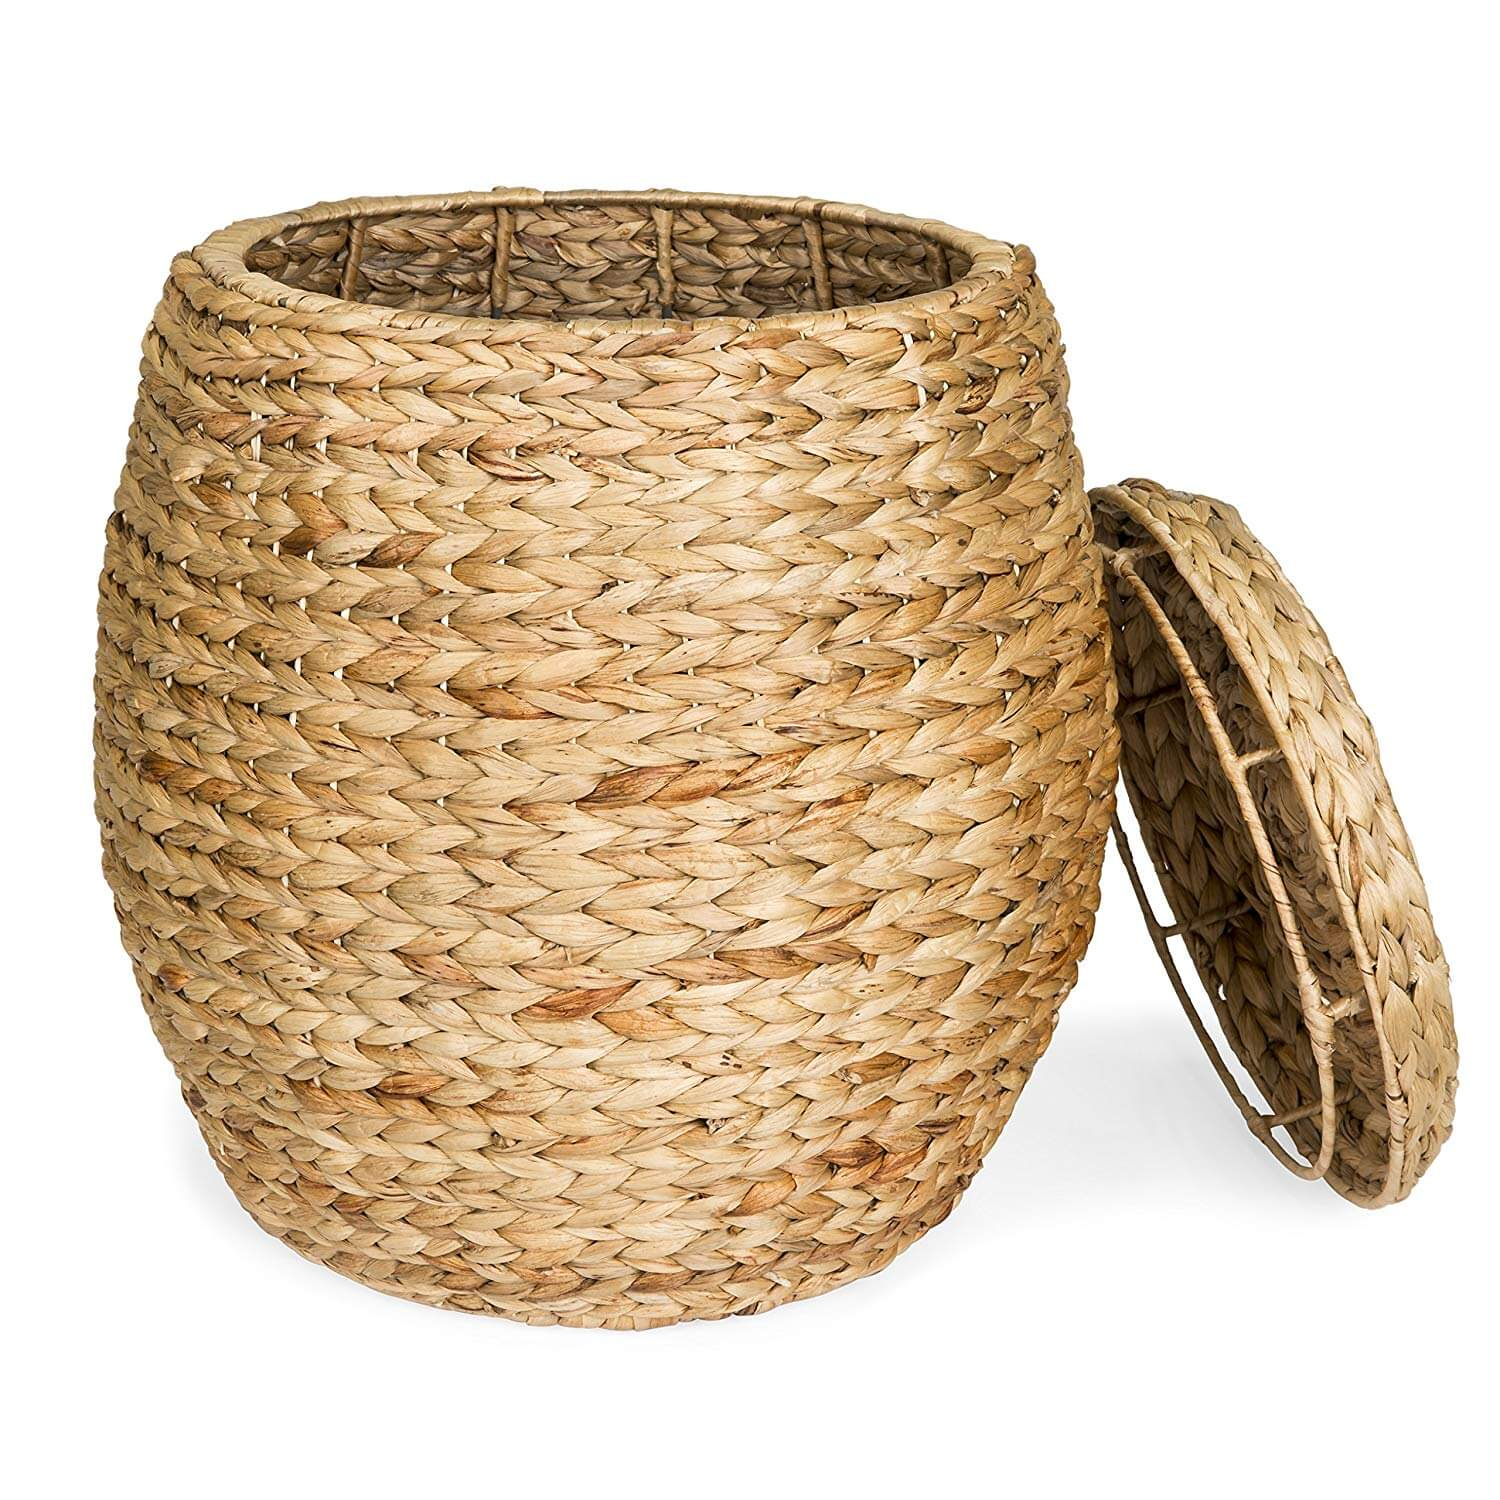 Multipurpose Handcrafted Seagrass Wicker Basket